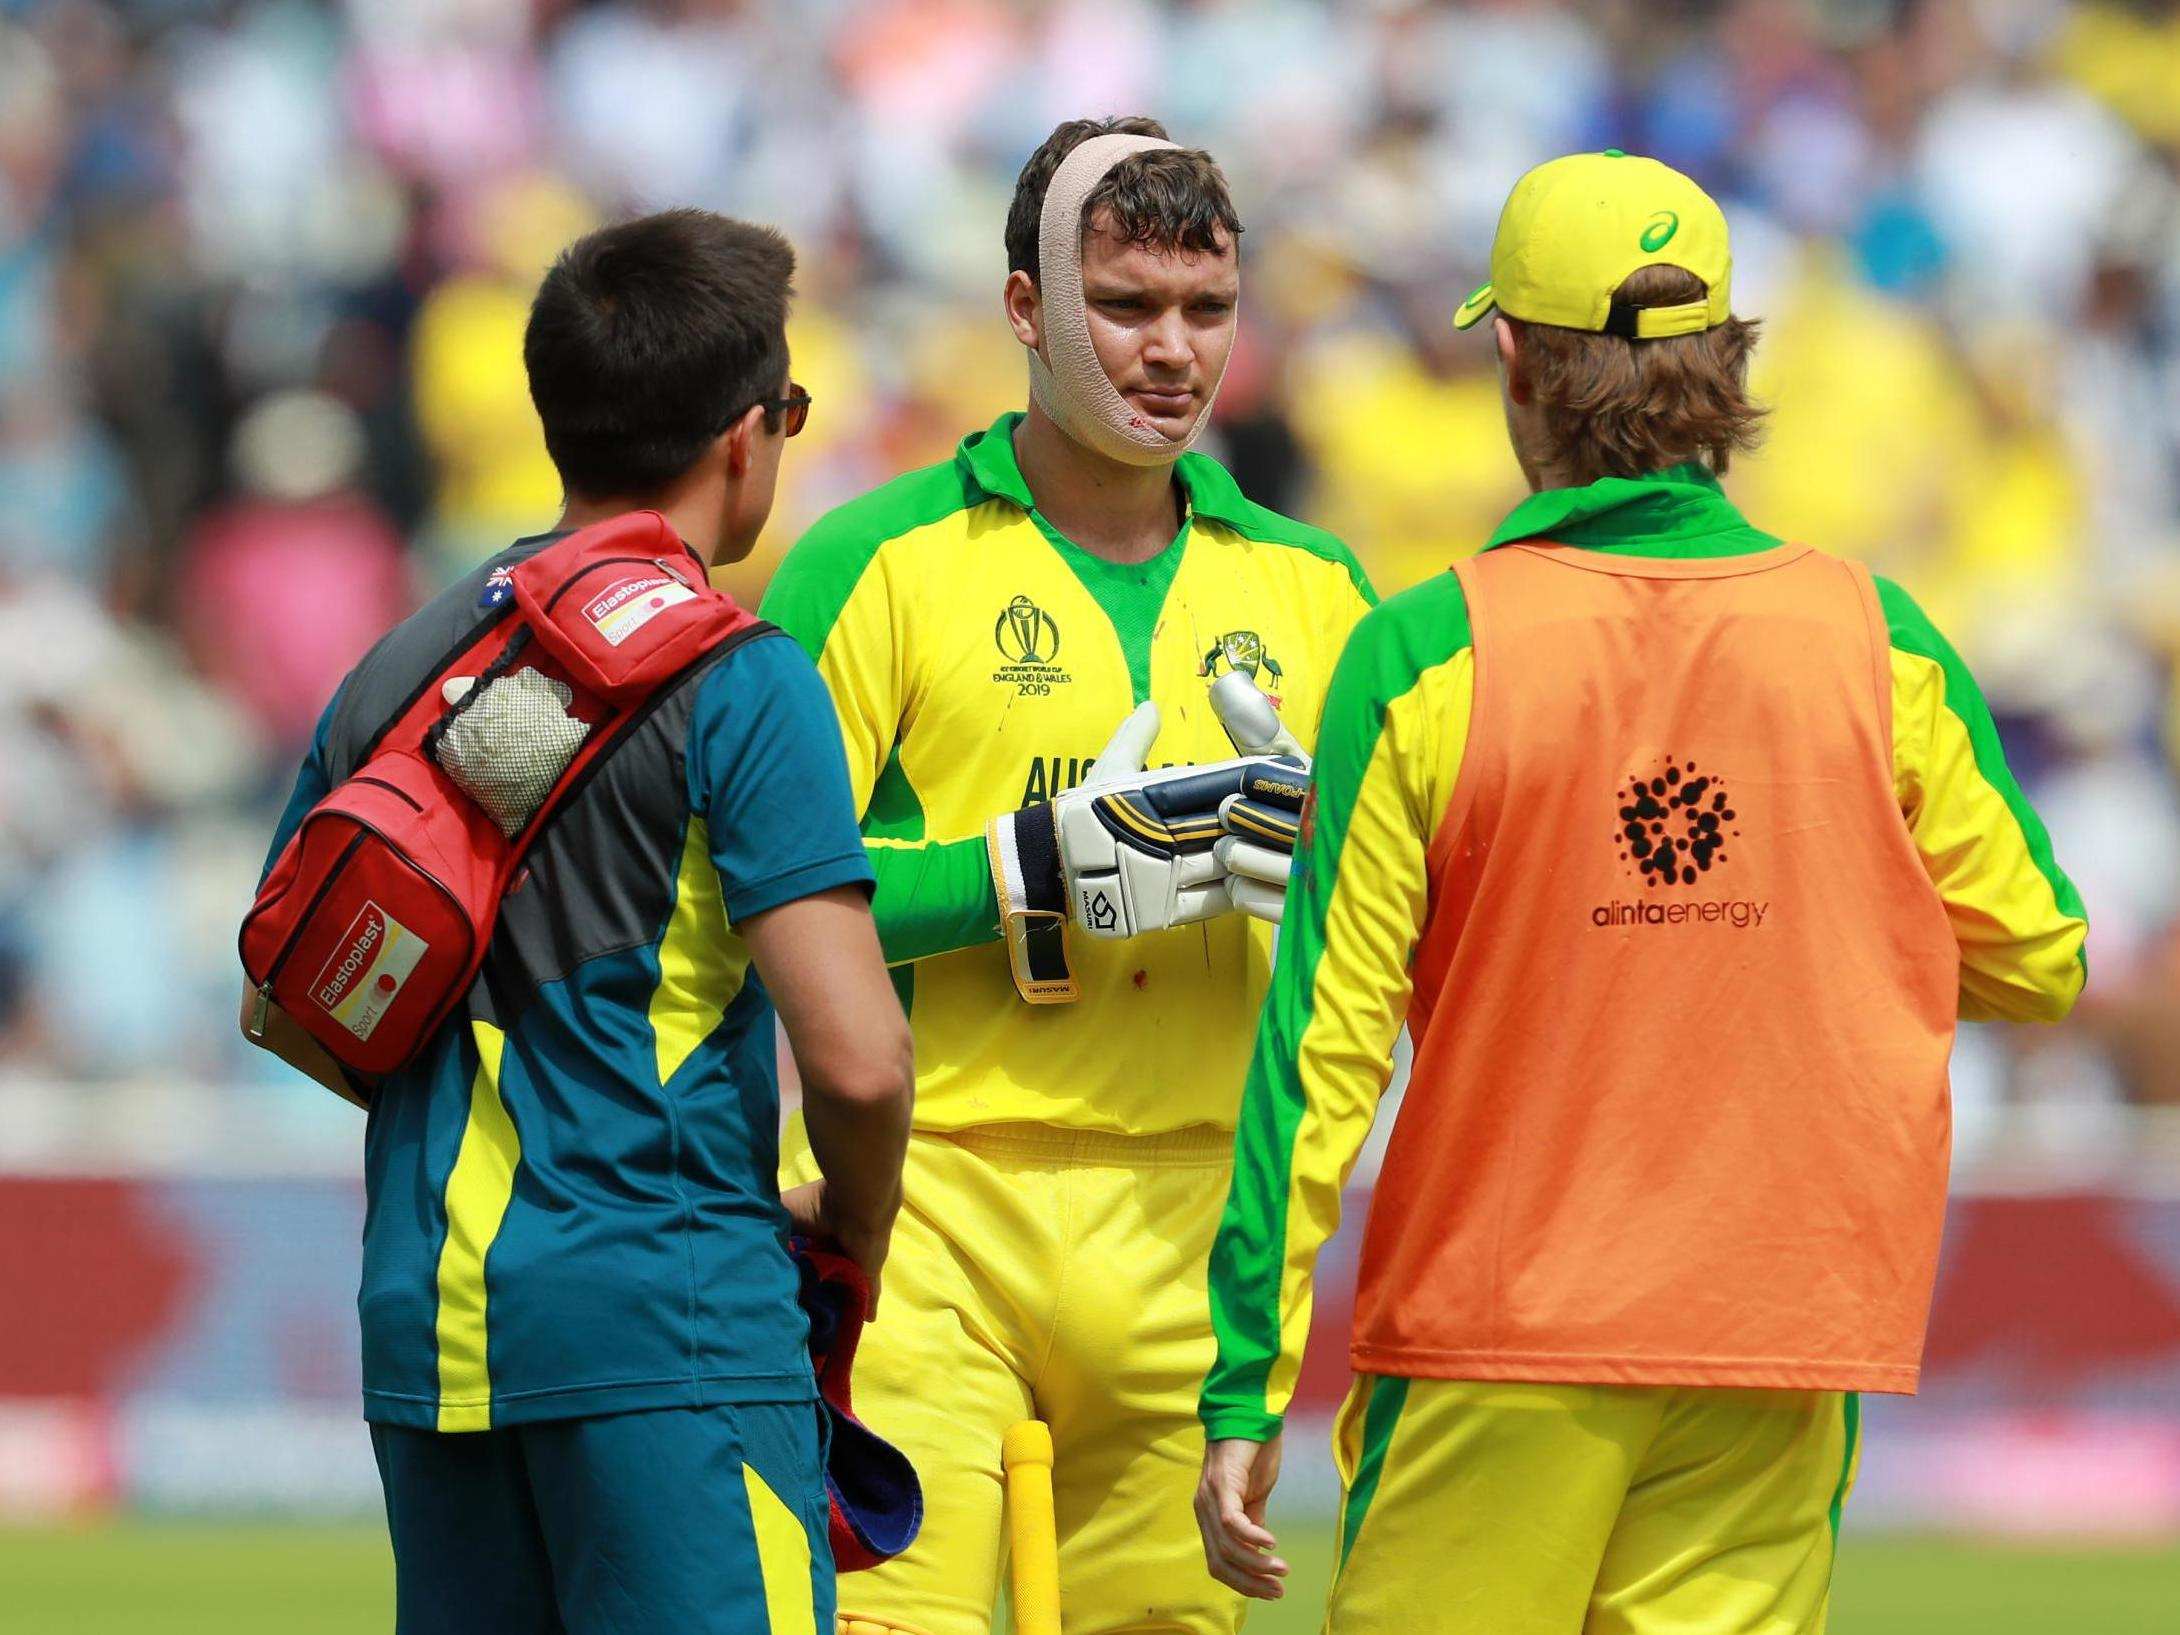 Ashes 2019: ICC approves concussion 'like for like' substitutes in international cricket